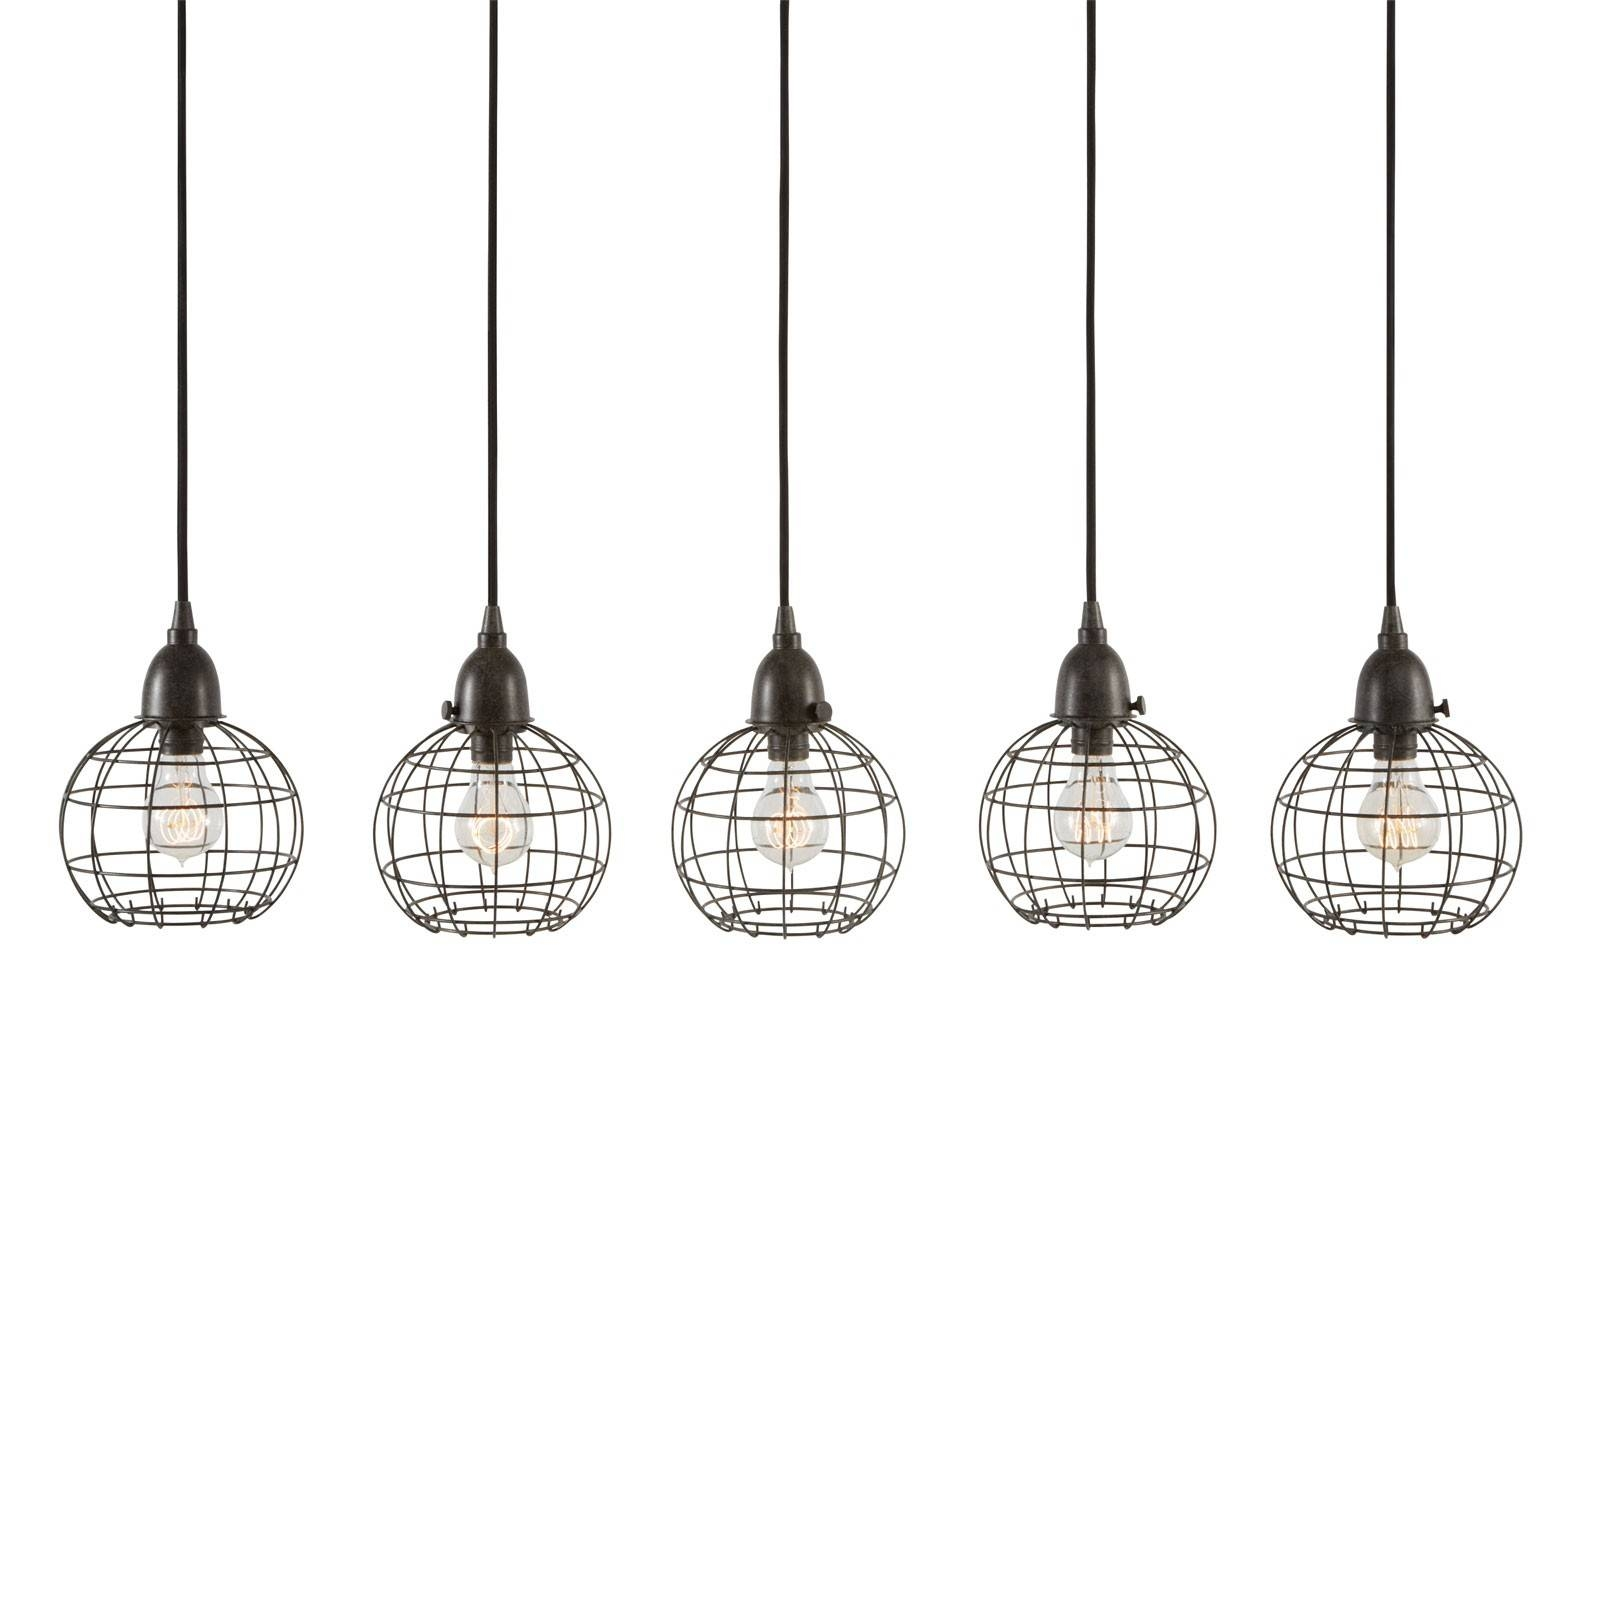 Fixtures Light : Amusing Diy Wire Cage Pendant Light , Wire Cage within Wire Ball Lights Pendants (Image 6 of 15)